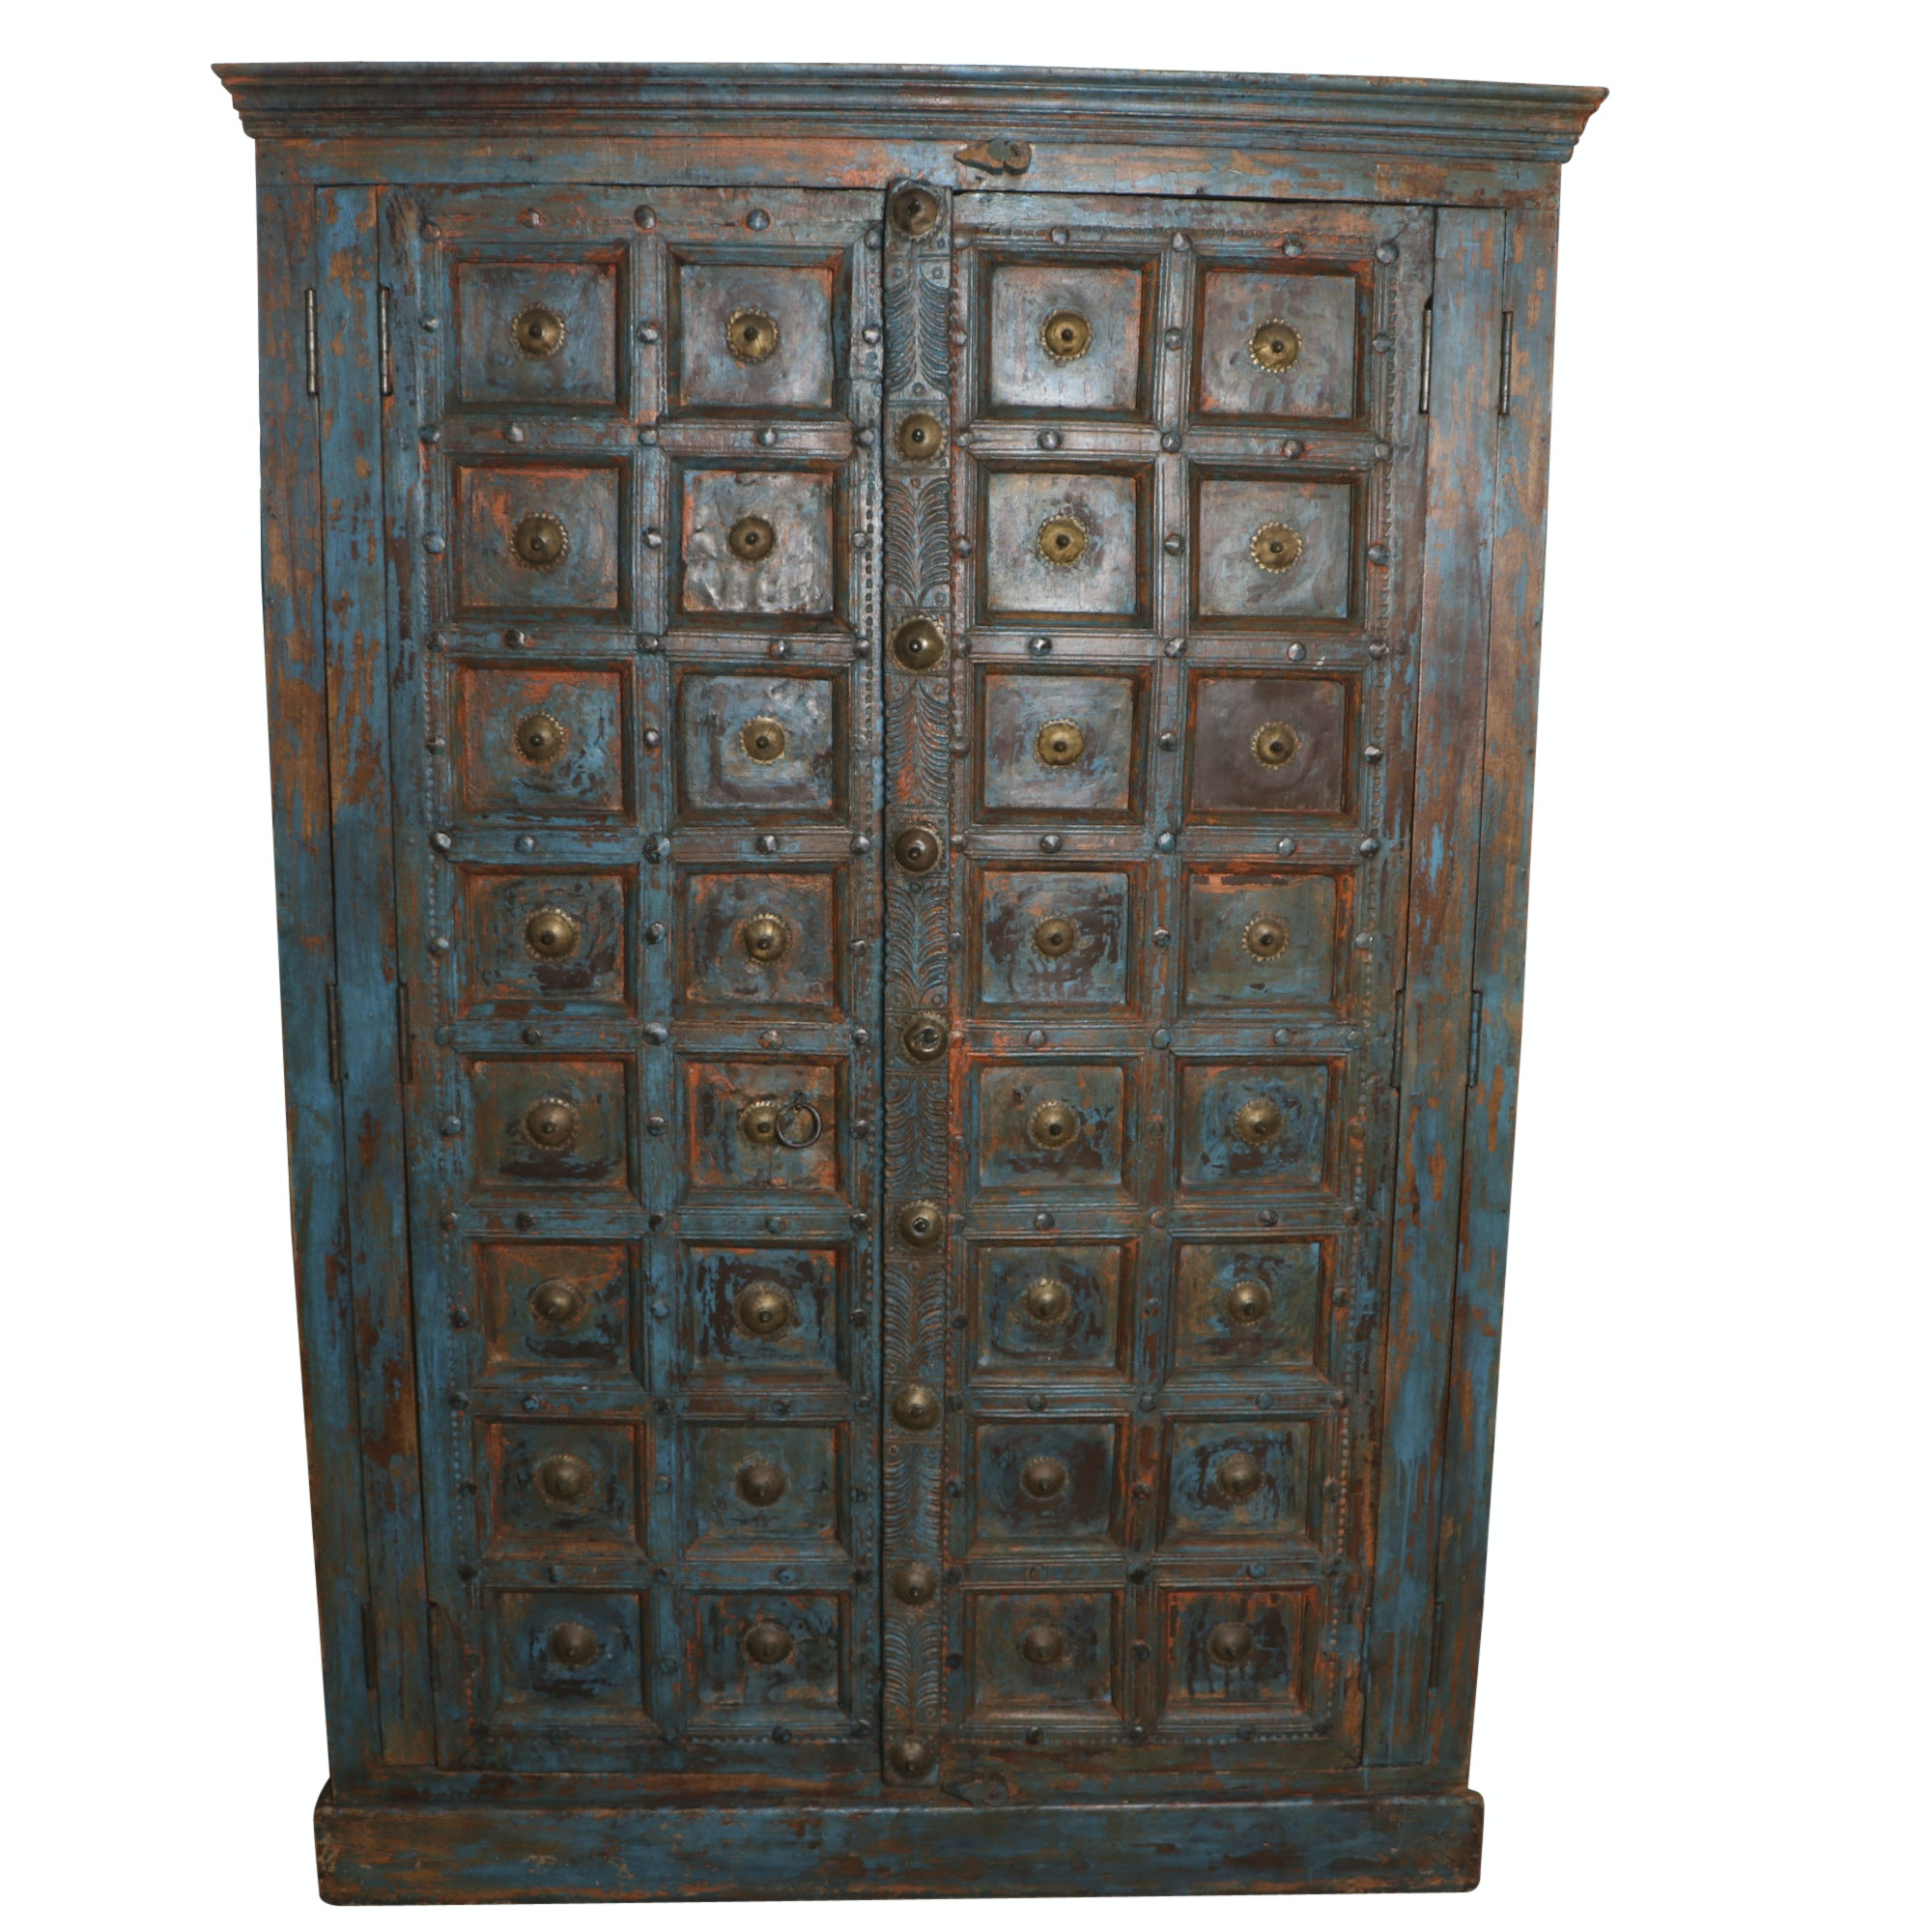 Rustic Asian Style Polychrome Wardrobe Cabinet